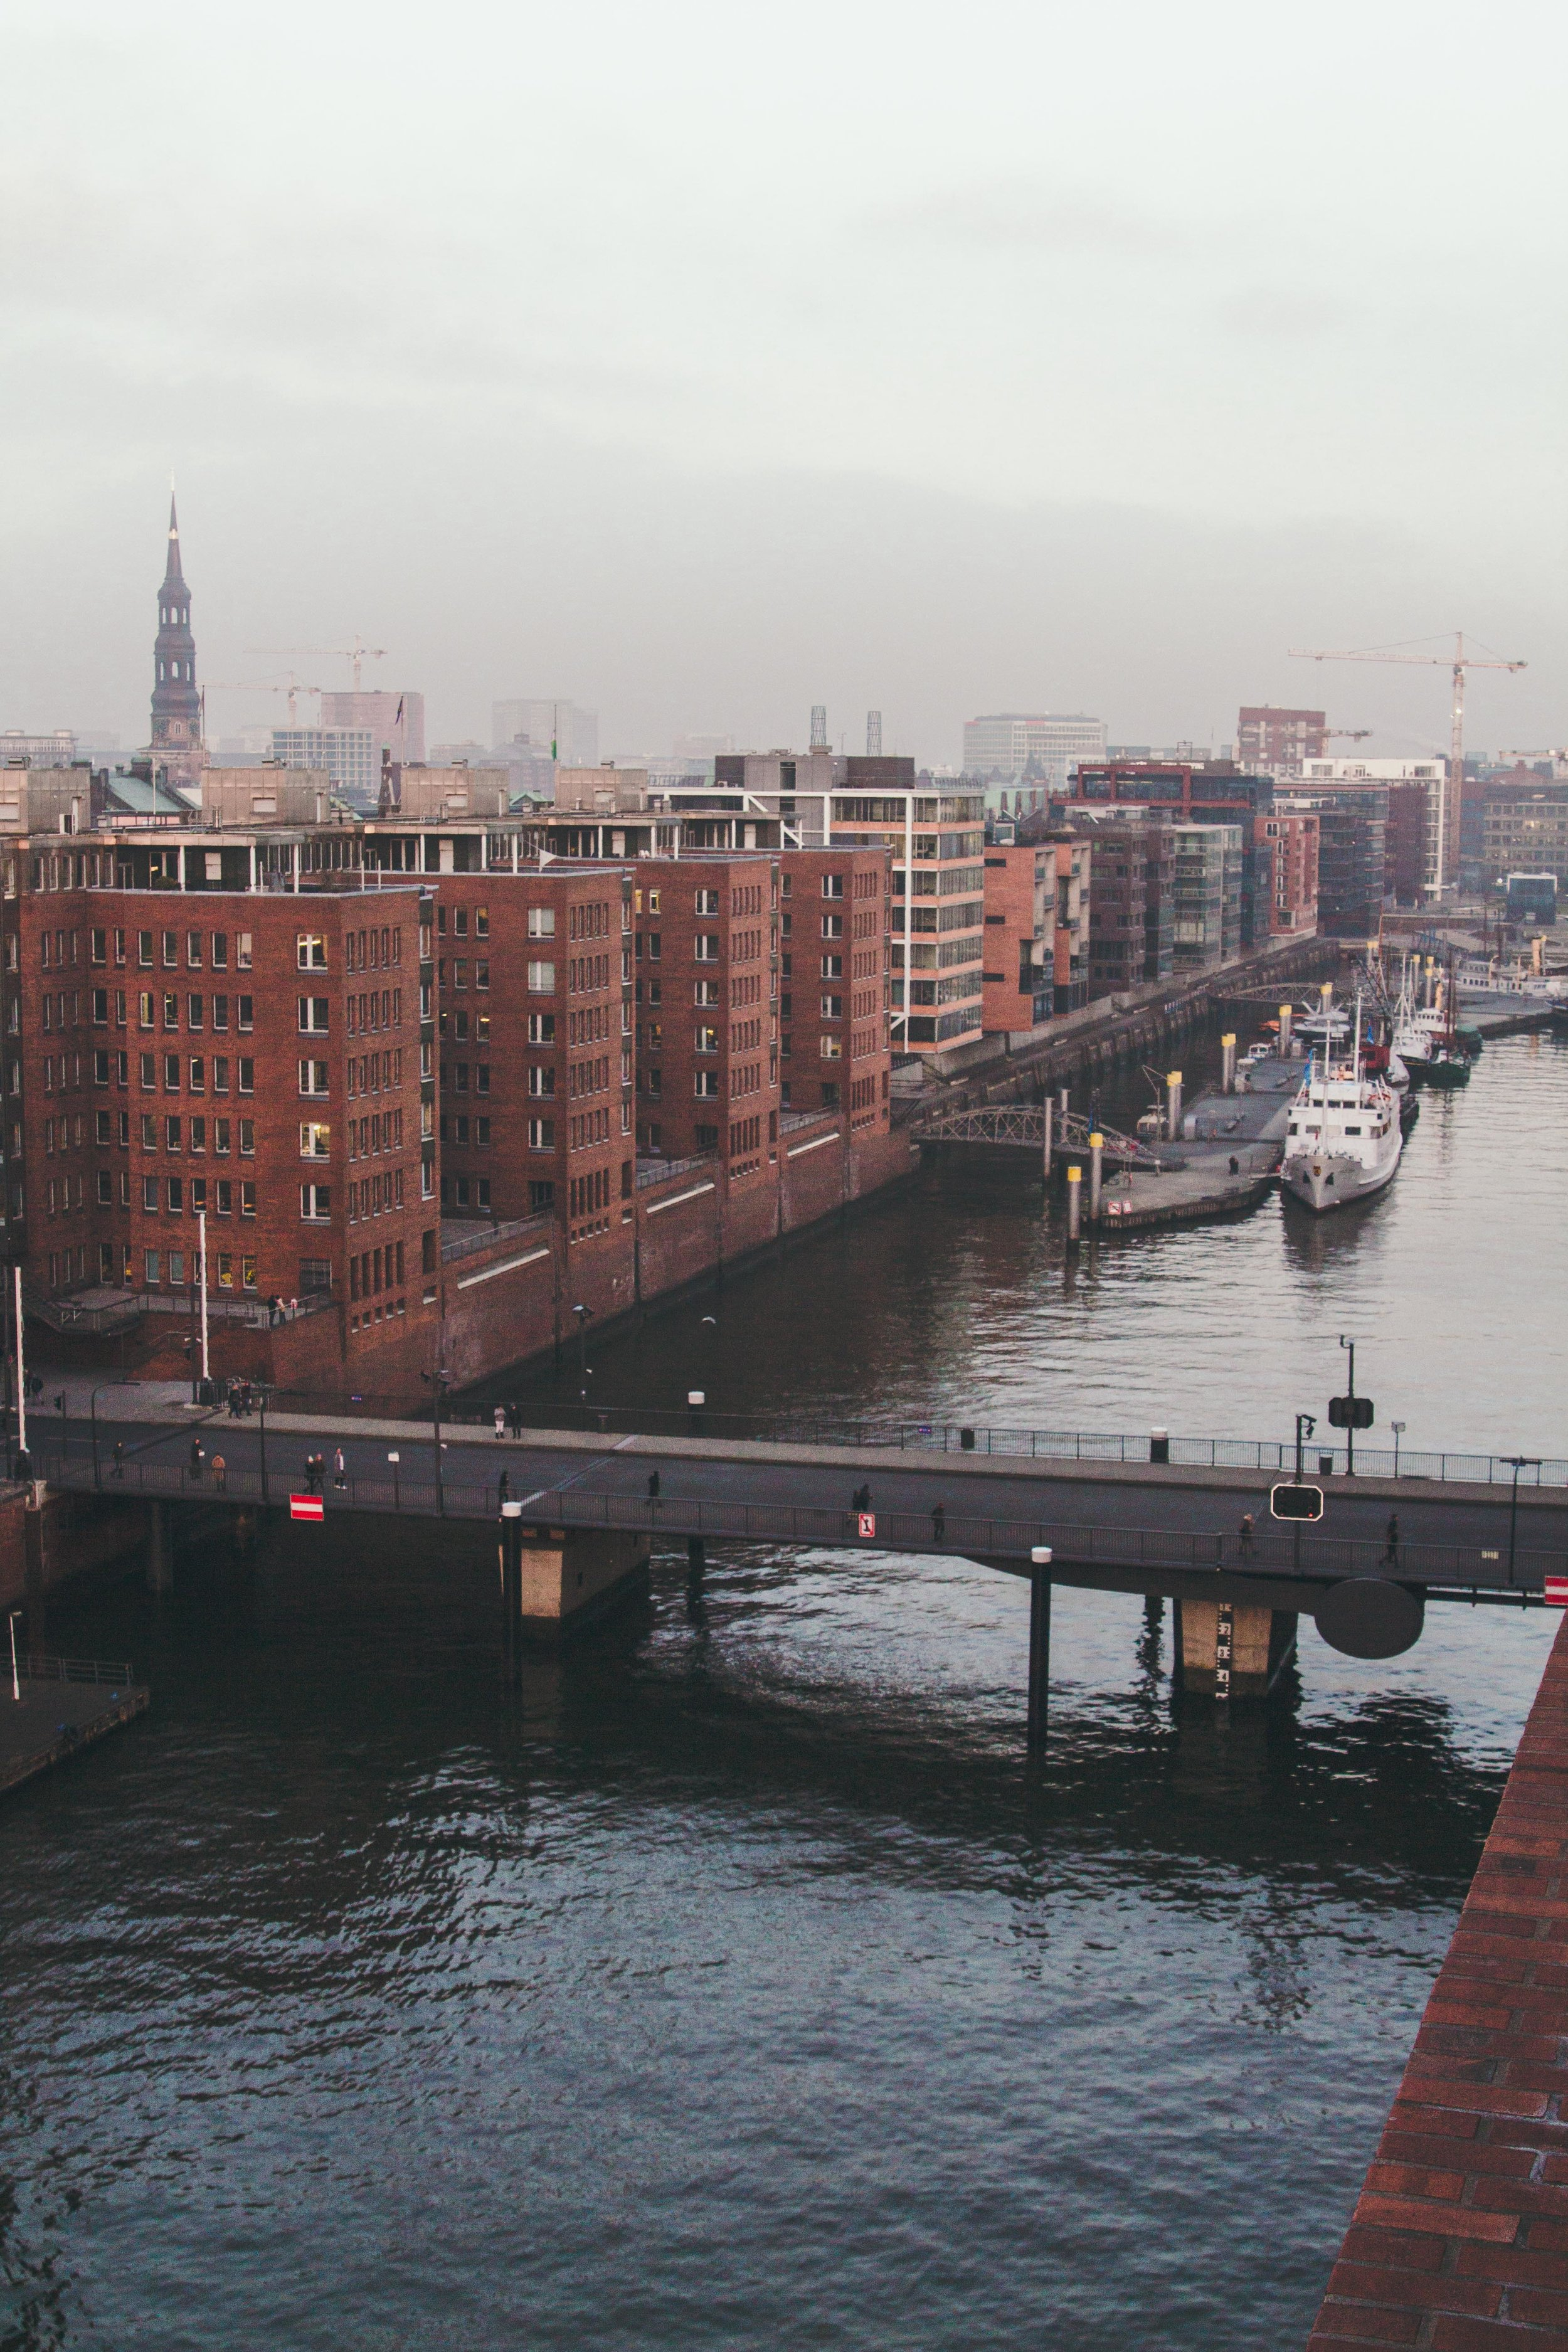 Hamburg was stop number two of the trip.